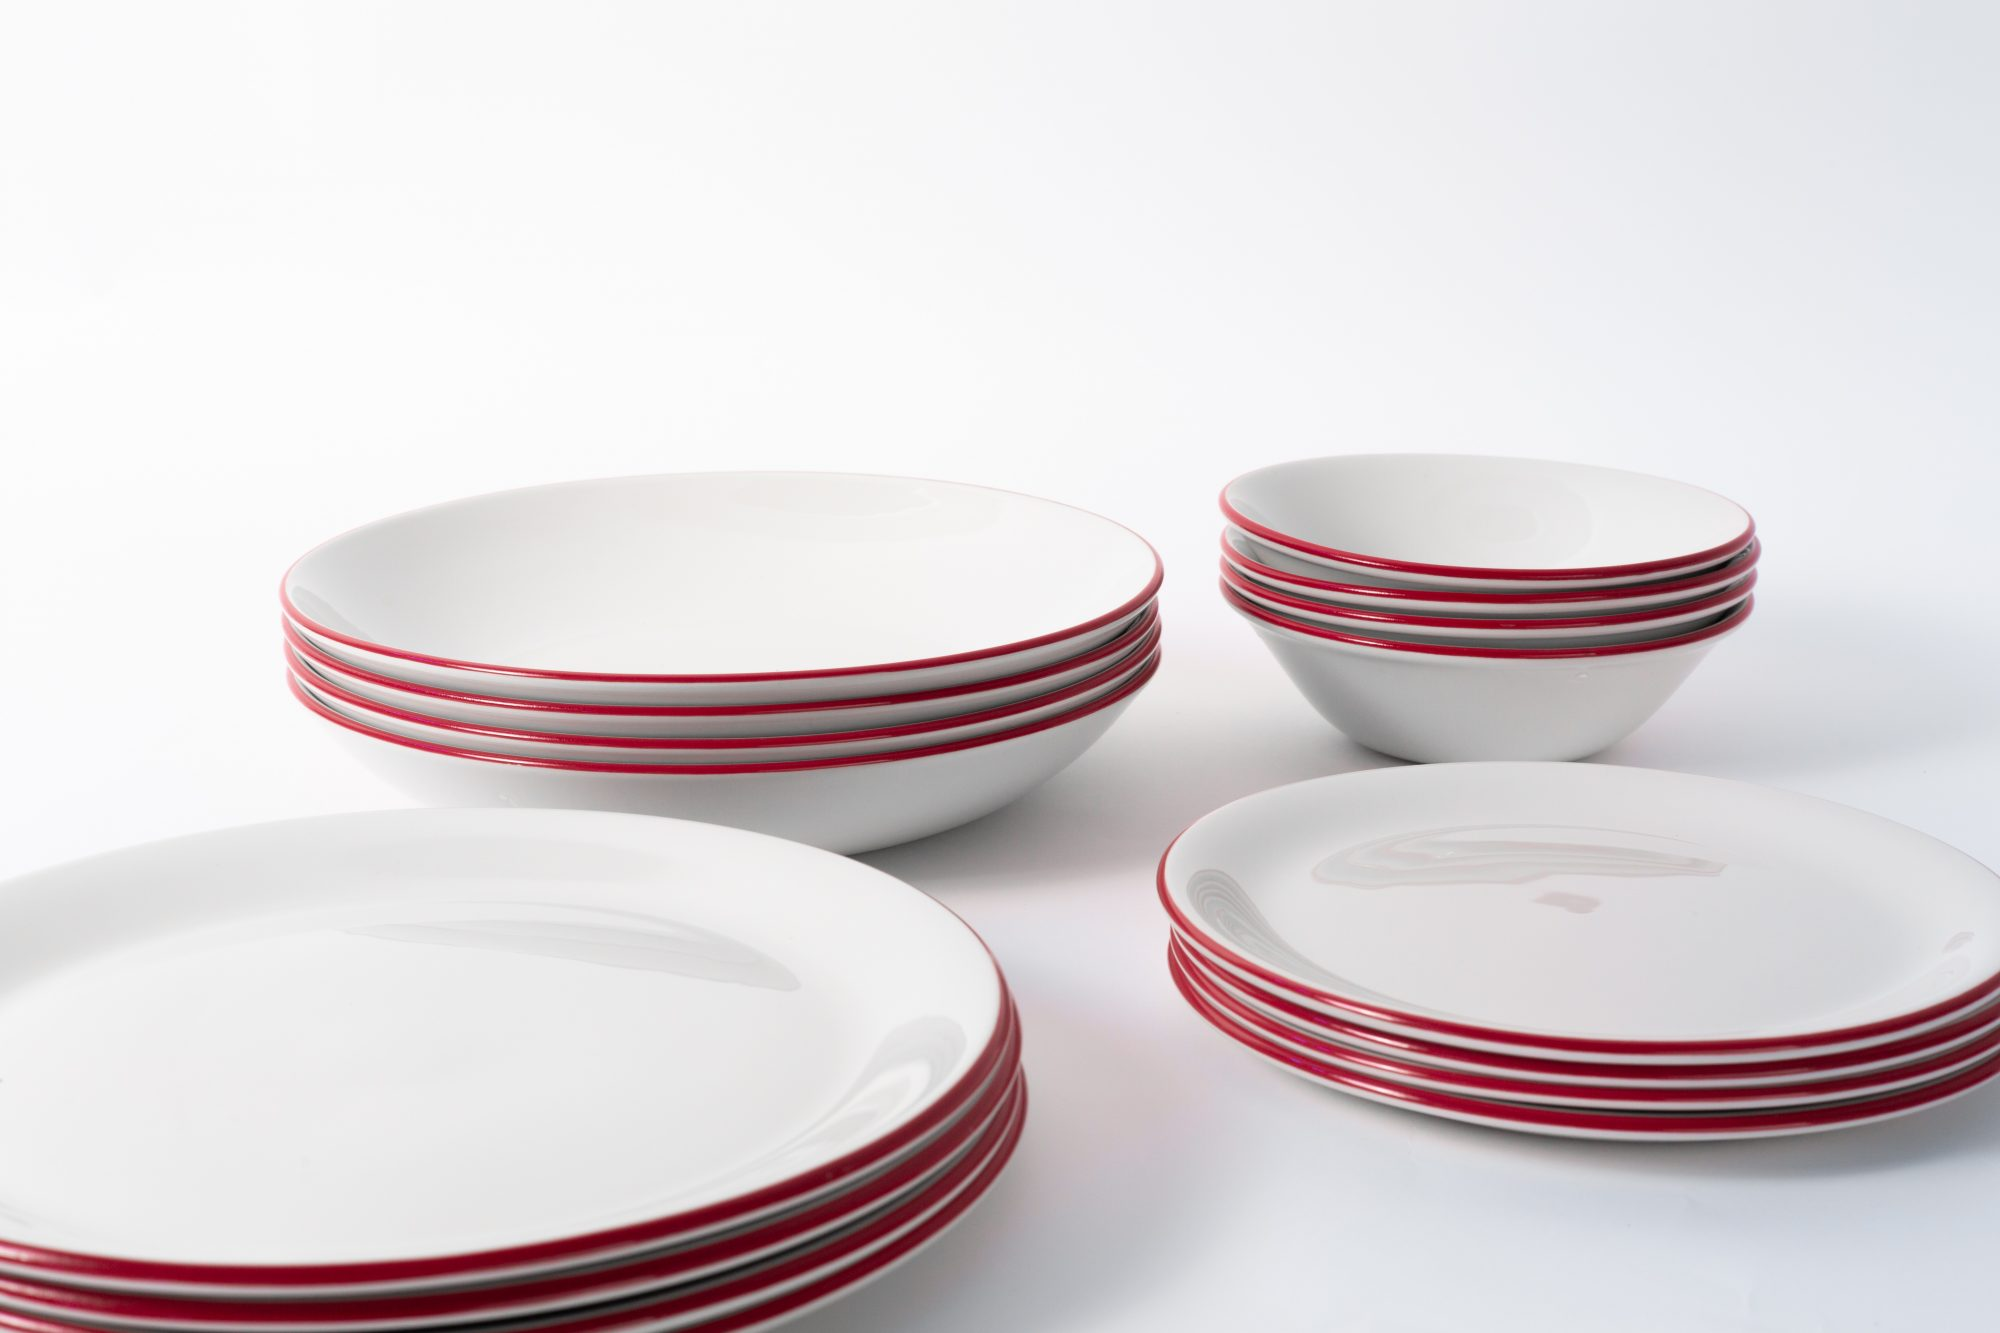 4 place sets with bowls and plates, white lined with red